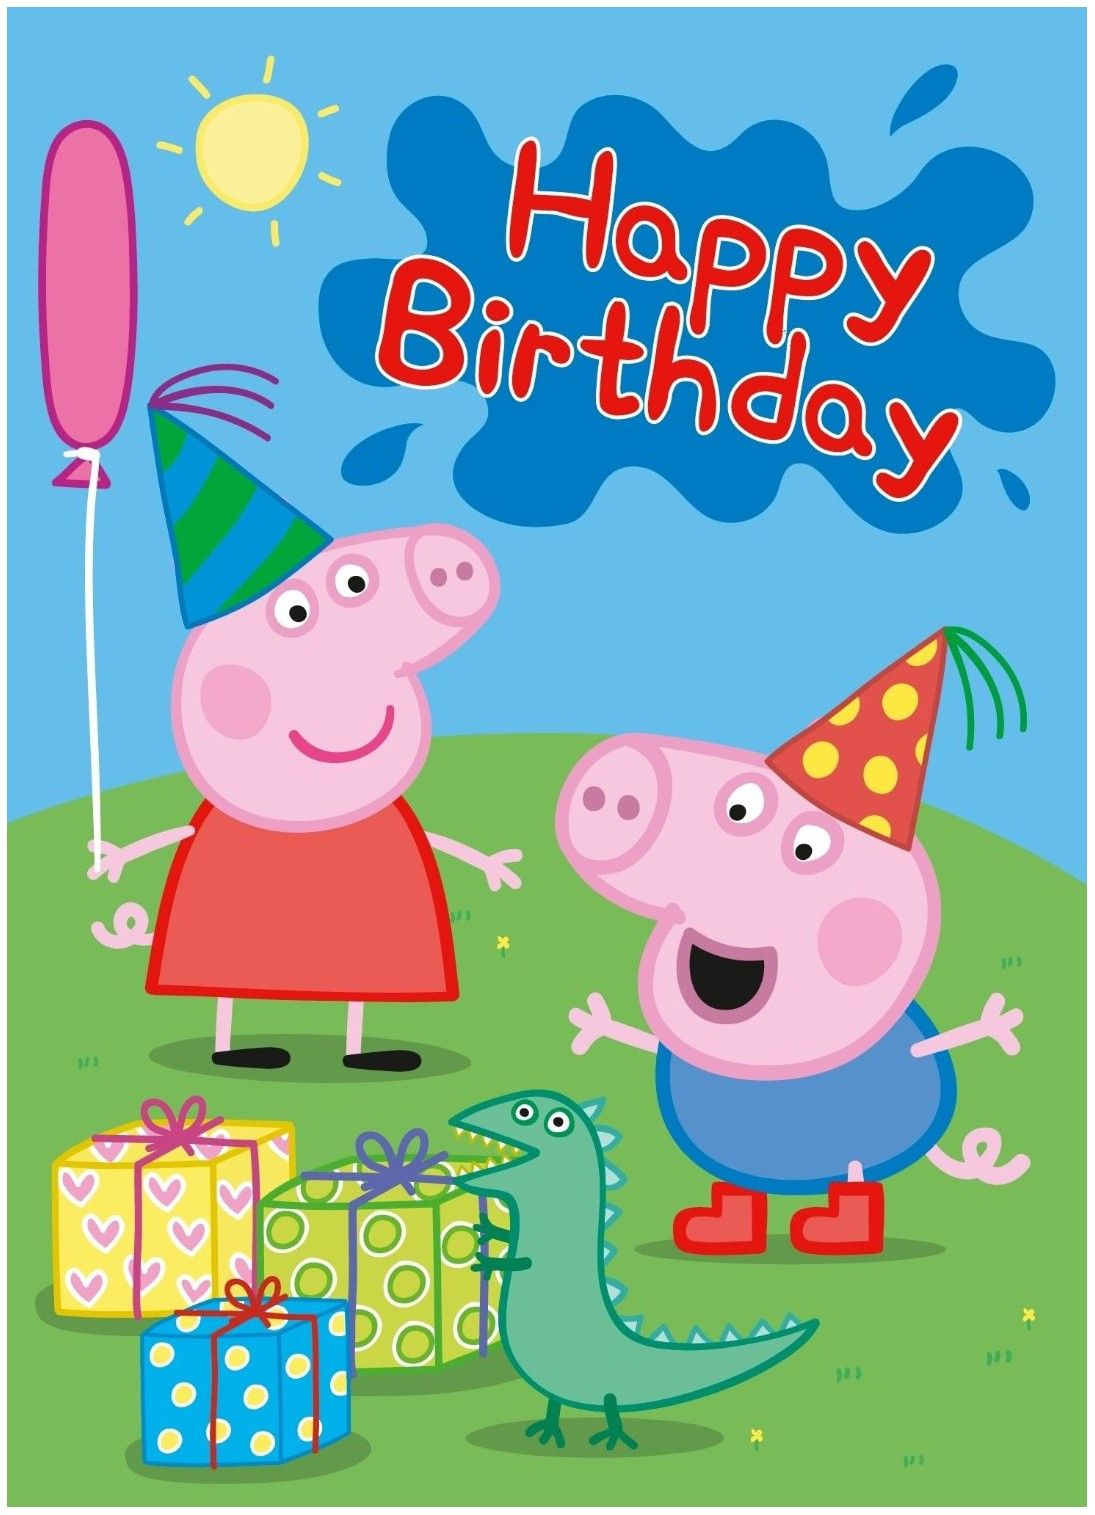 Pin by Diana Palencia on Peppa Pig  Pinterest